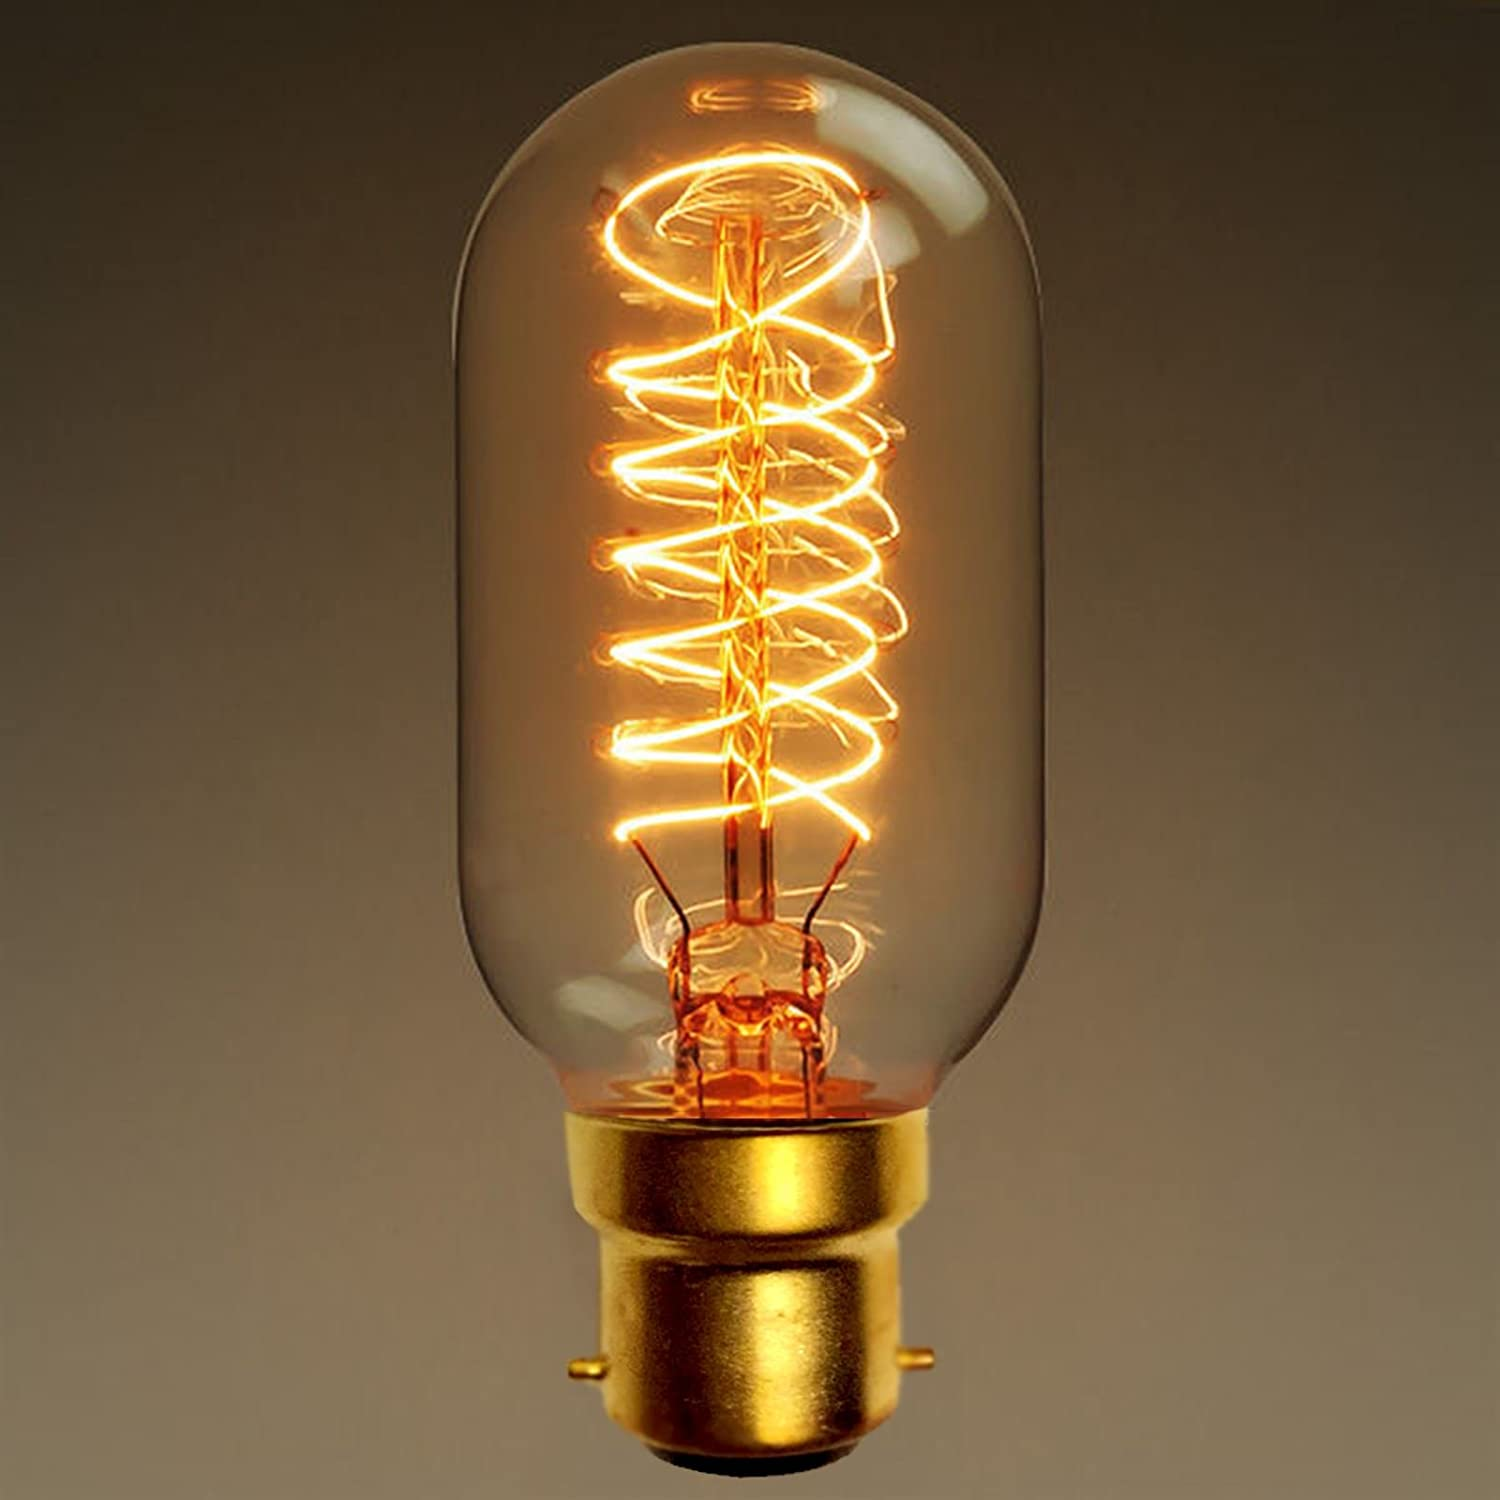 Dimmable Vintage Edison Light Bulbs Retro Style Industrial paul russells 3 X T45 Radio valve Spiral Bayonet Cap Filament Amber Glass Antique Decorative Light BC B22 2700K Warm White 40W Incandescent Lamp [Pack of 3 Bulbs]